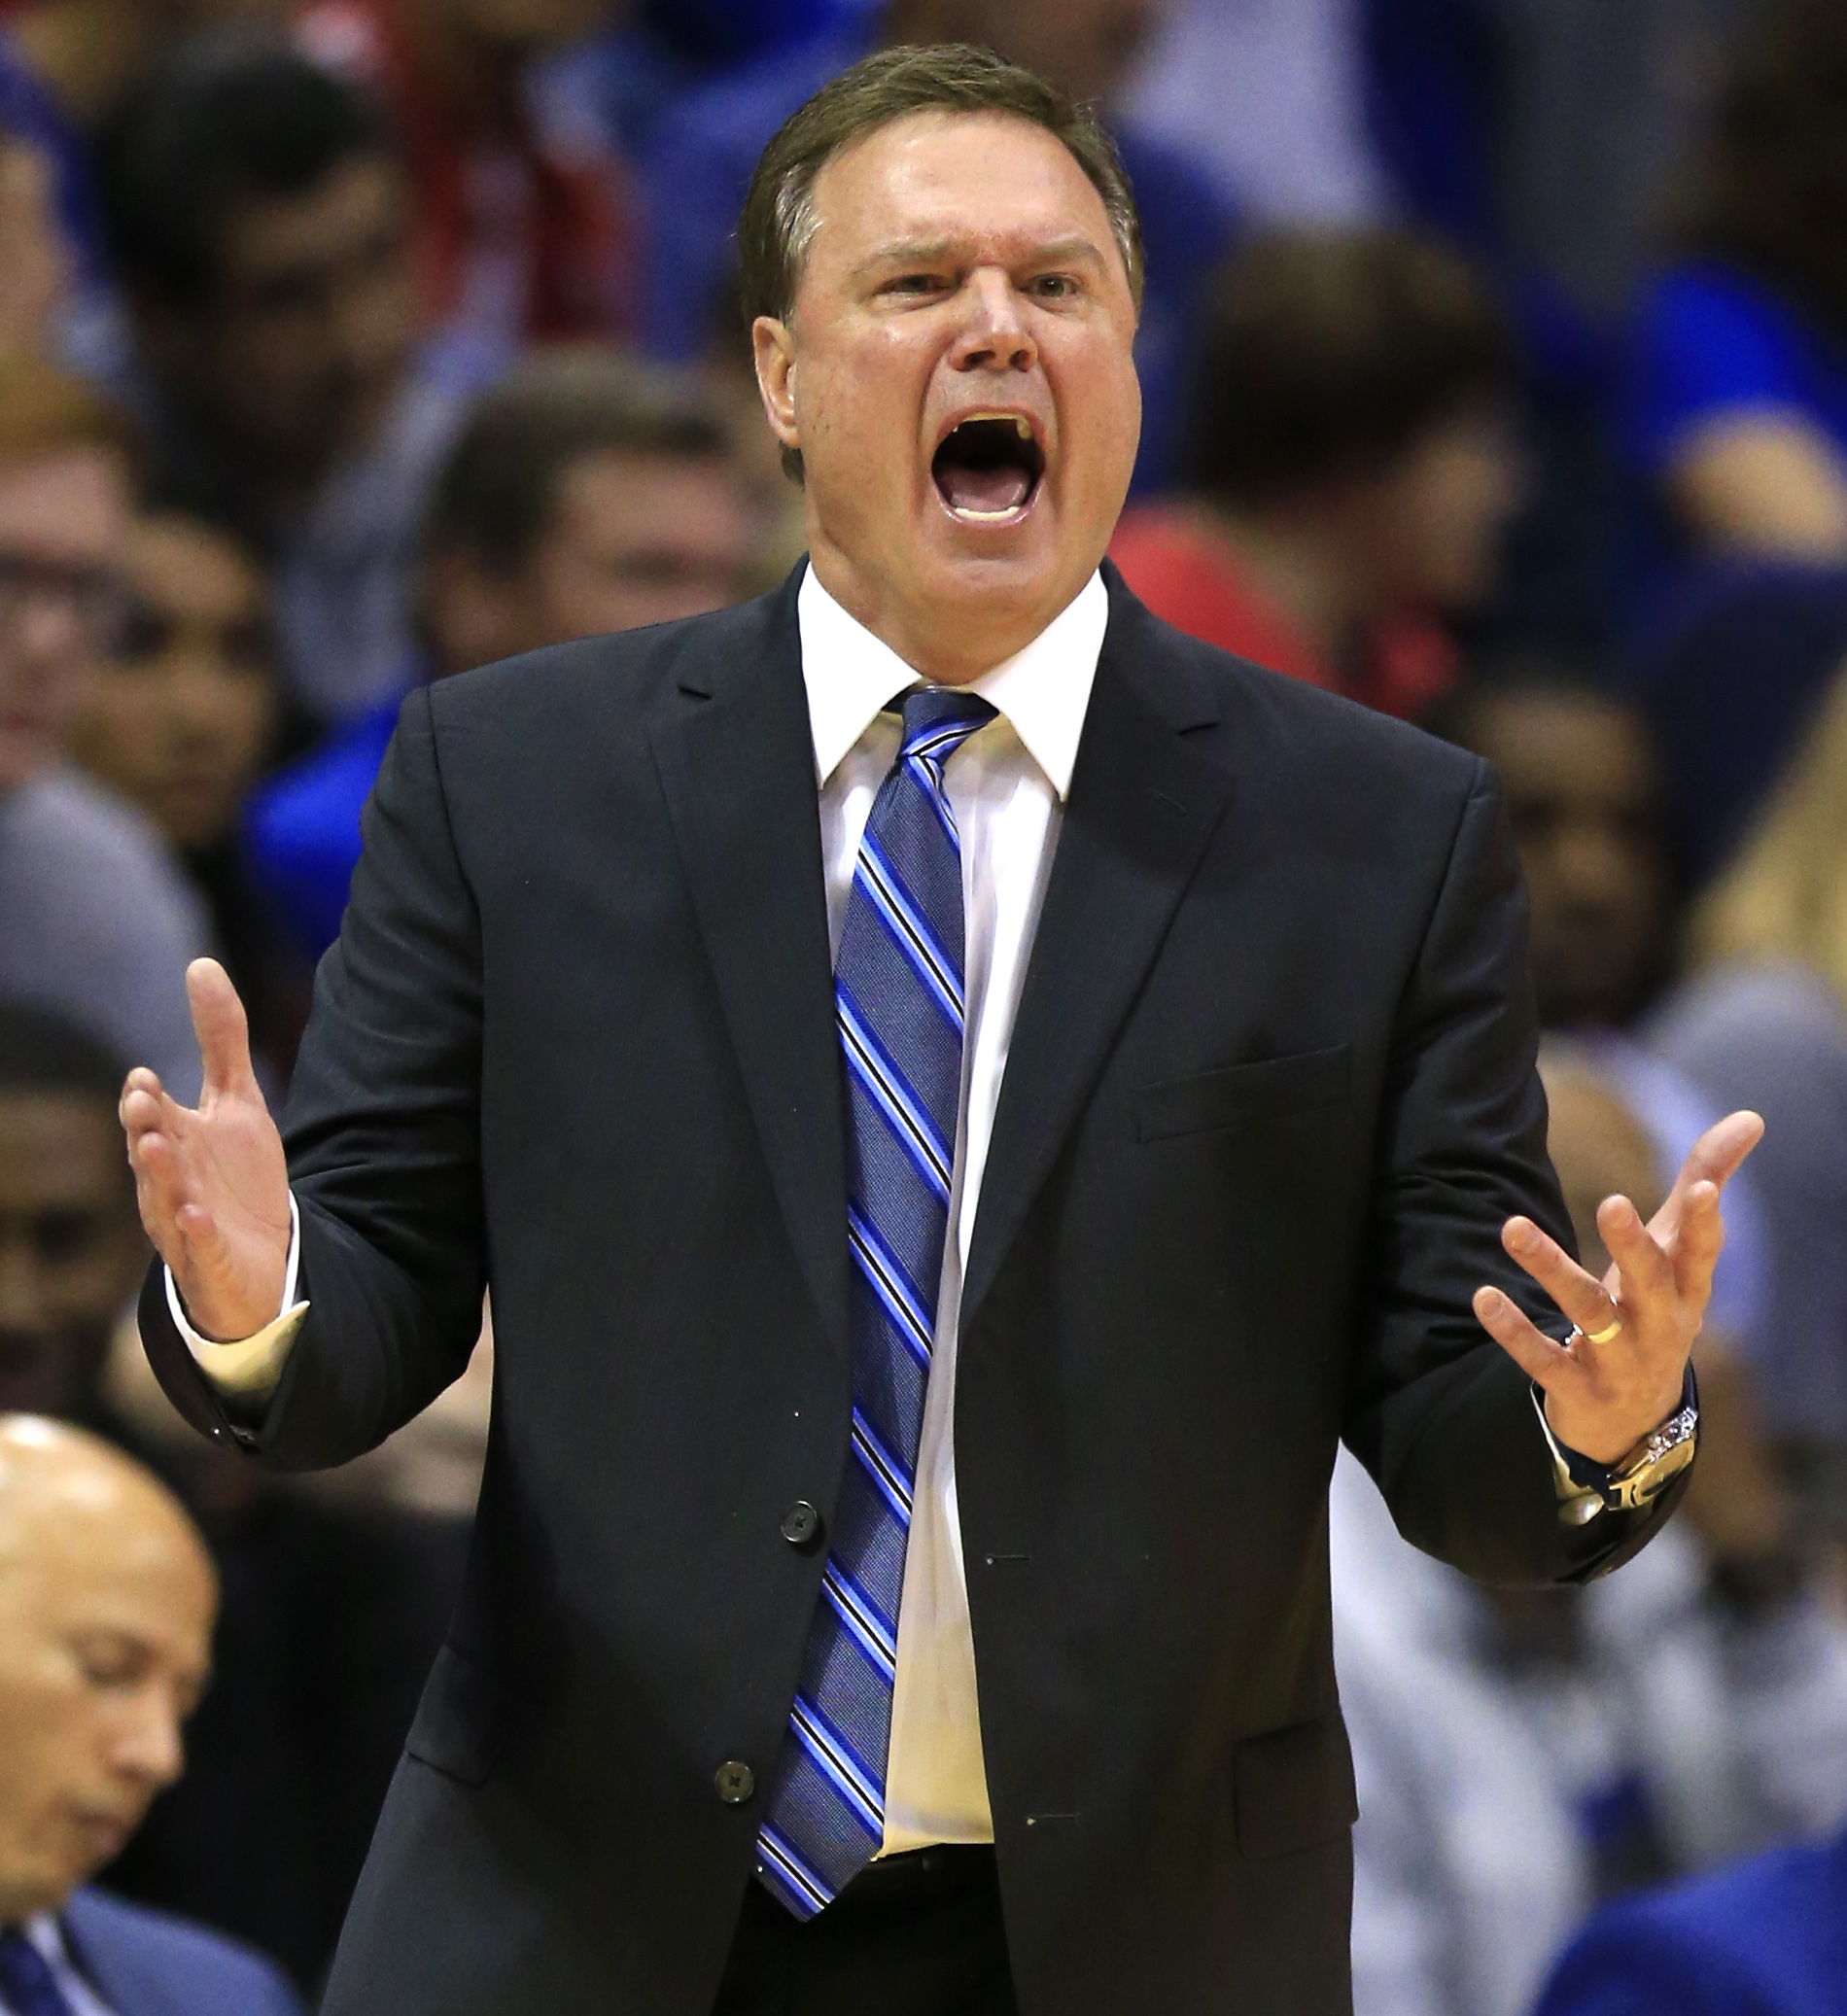 Kansas coach Bill Self yells to his team during the second half of an NCAA college basketball game against Kansas State in Lawrence, Kan., Wednesday, Feb. 3, 2016. Kansas defeated Kansas State 77-59. (AP Photo/Orlin Wagner)